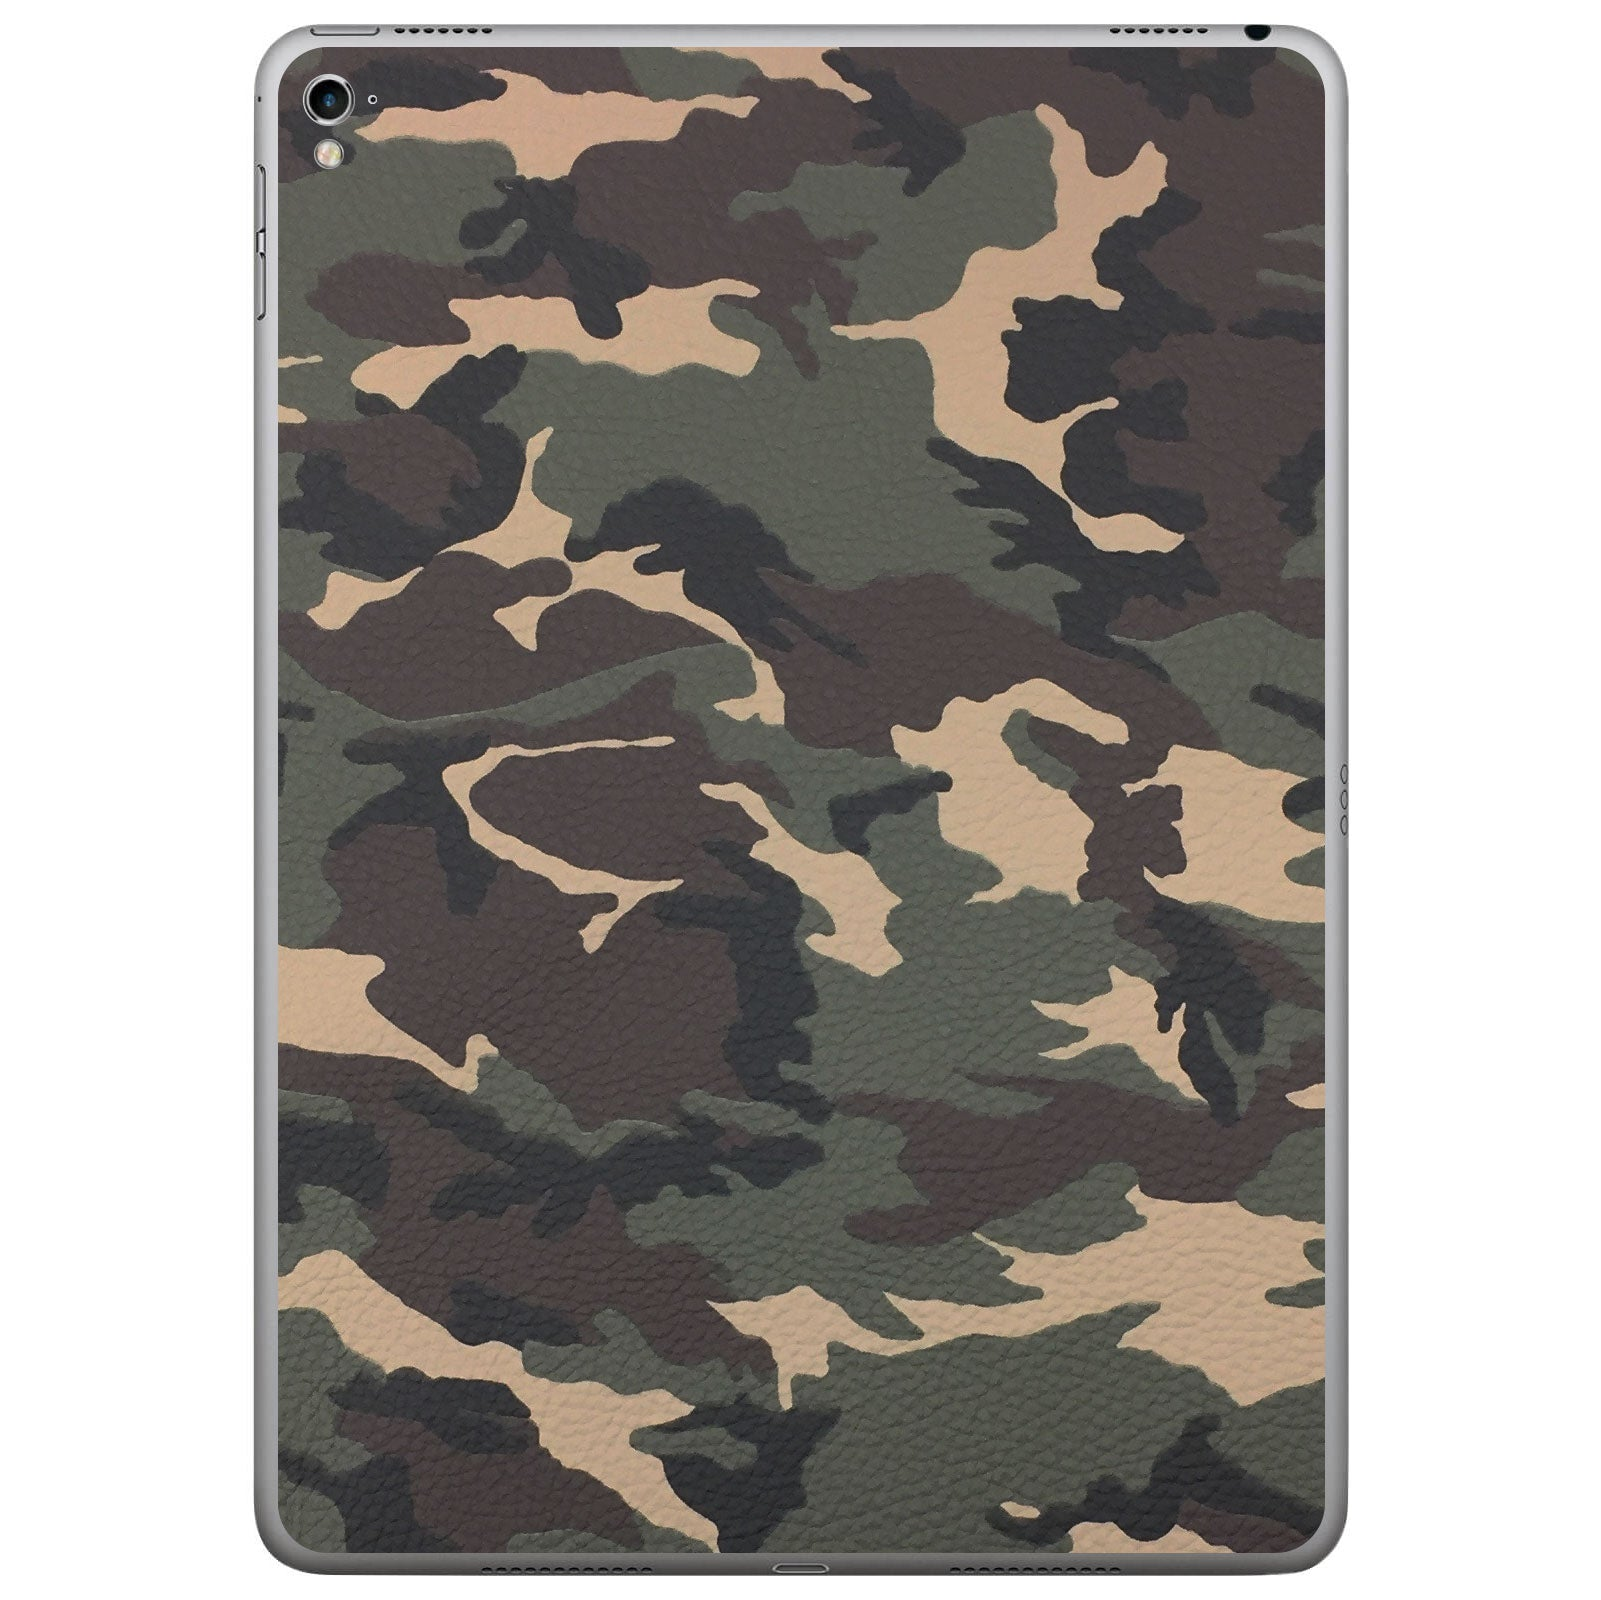 Camouflage iPad Pro Leather Skin